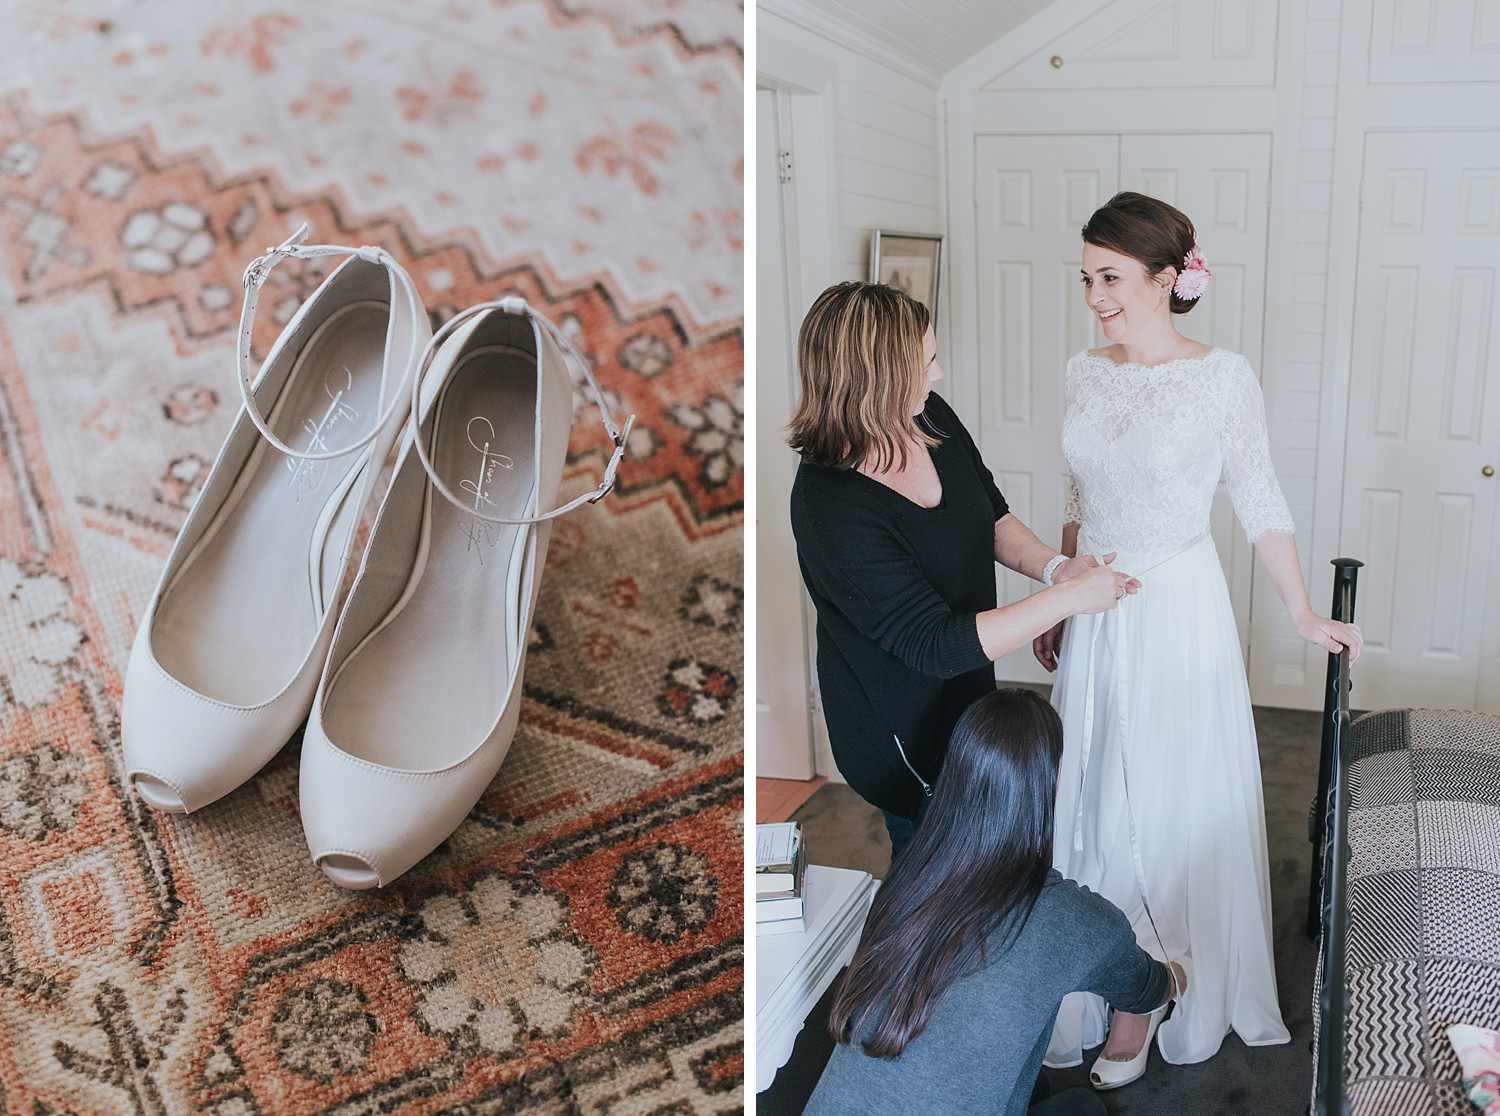 bridal prep at bendooley estate photographed by jonathan david